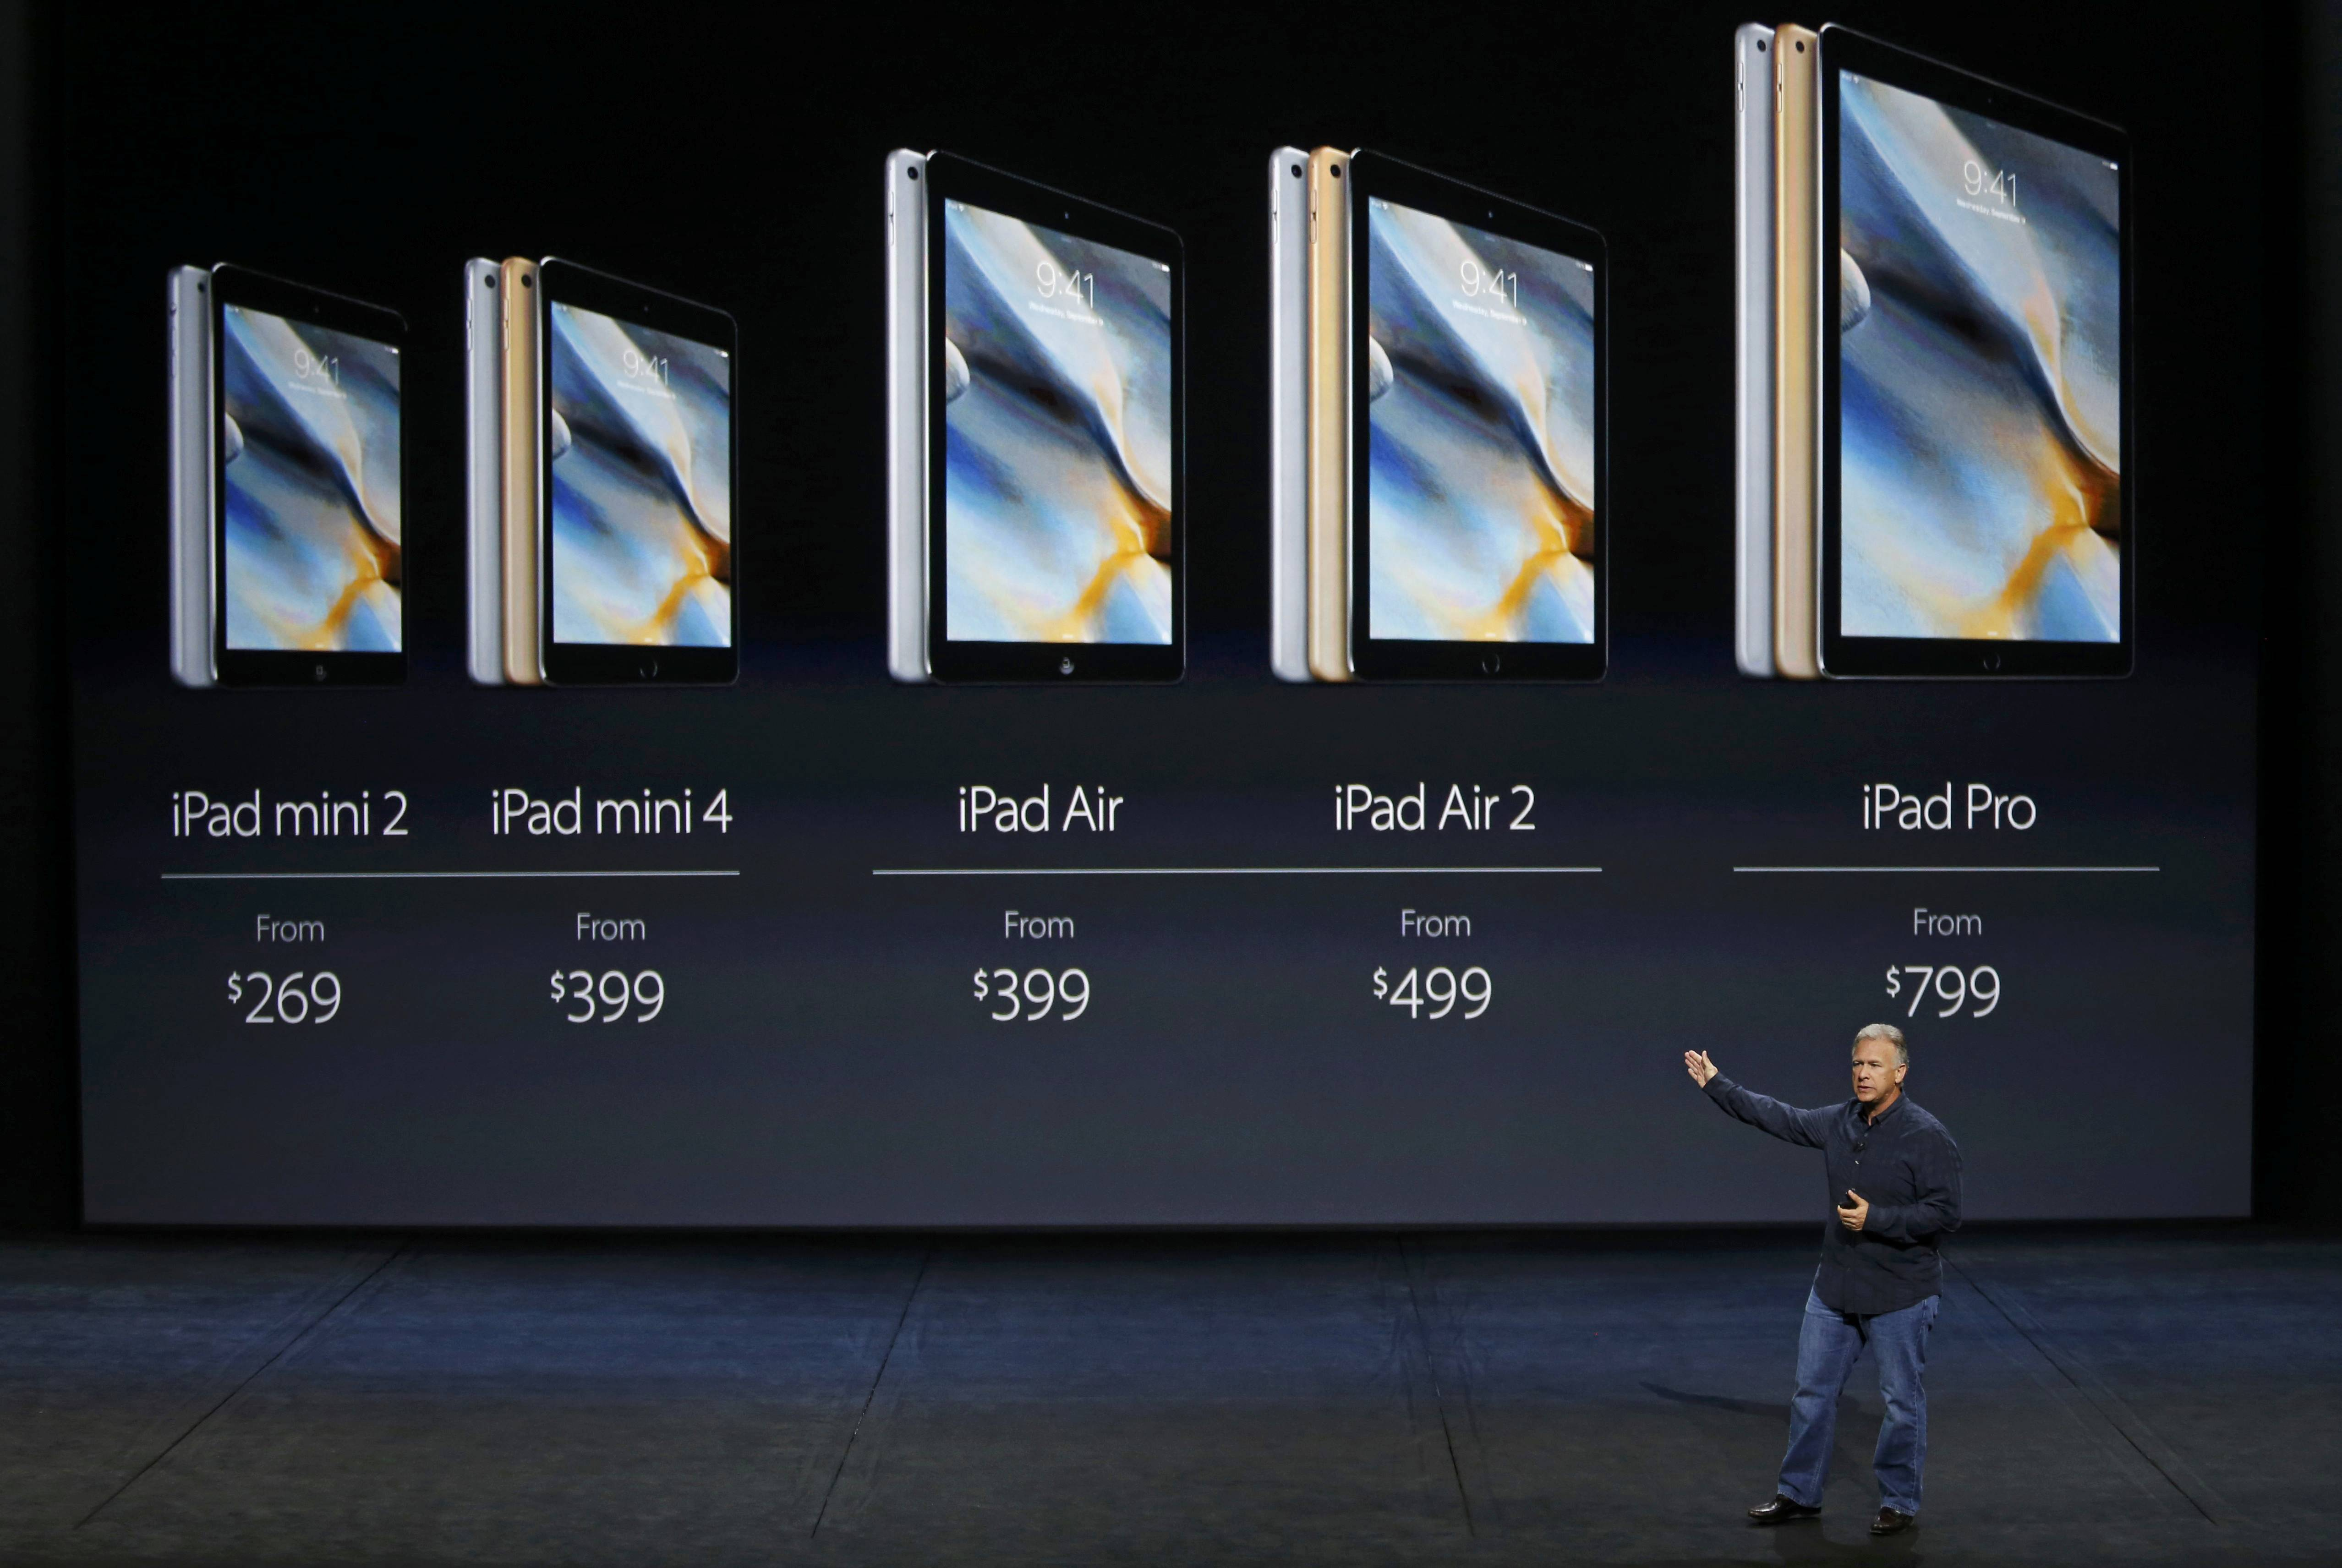 Phil Schiller, Senior Vice President of Worldwide Marketing at Apple Inc, speaks about the full line of iPad pricing during an Apple media event in San Francisco, California, September 9, 2015. Reuters/Beck Diefenbach